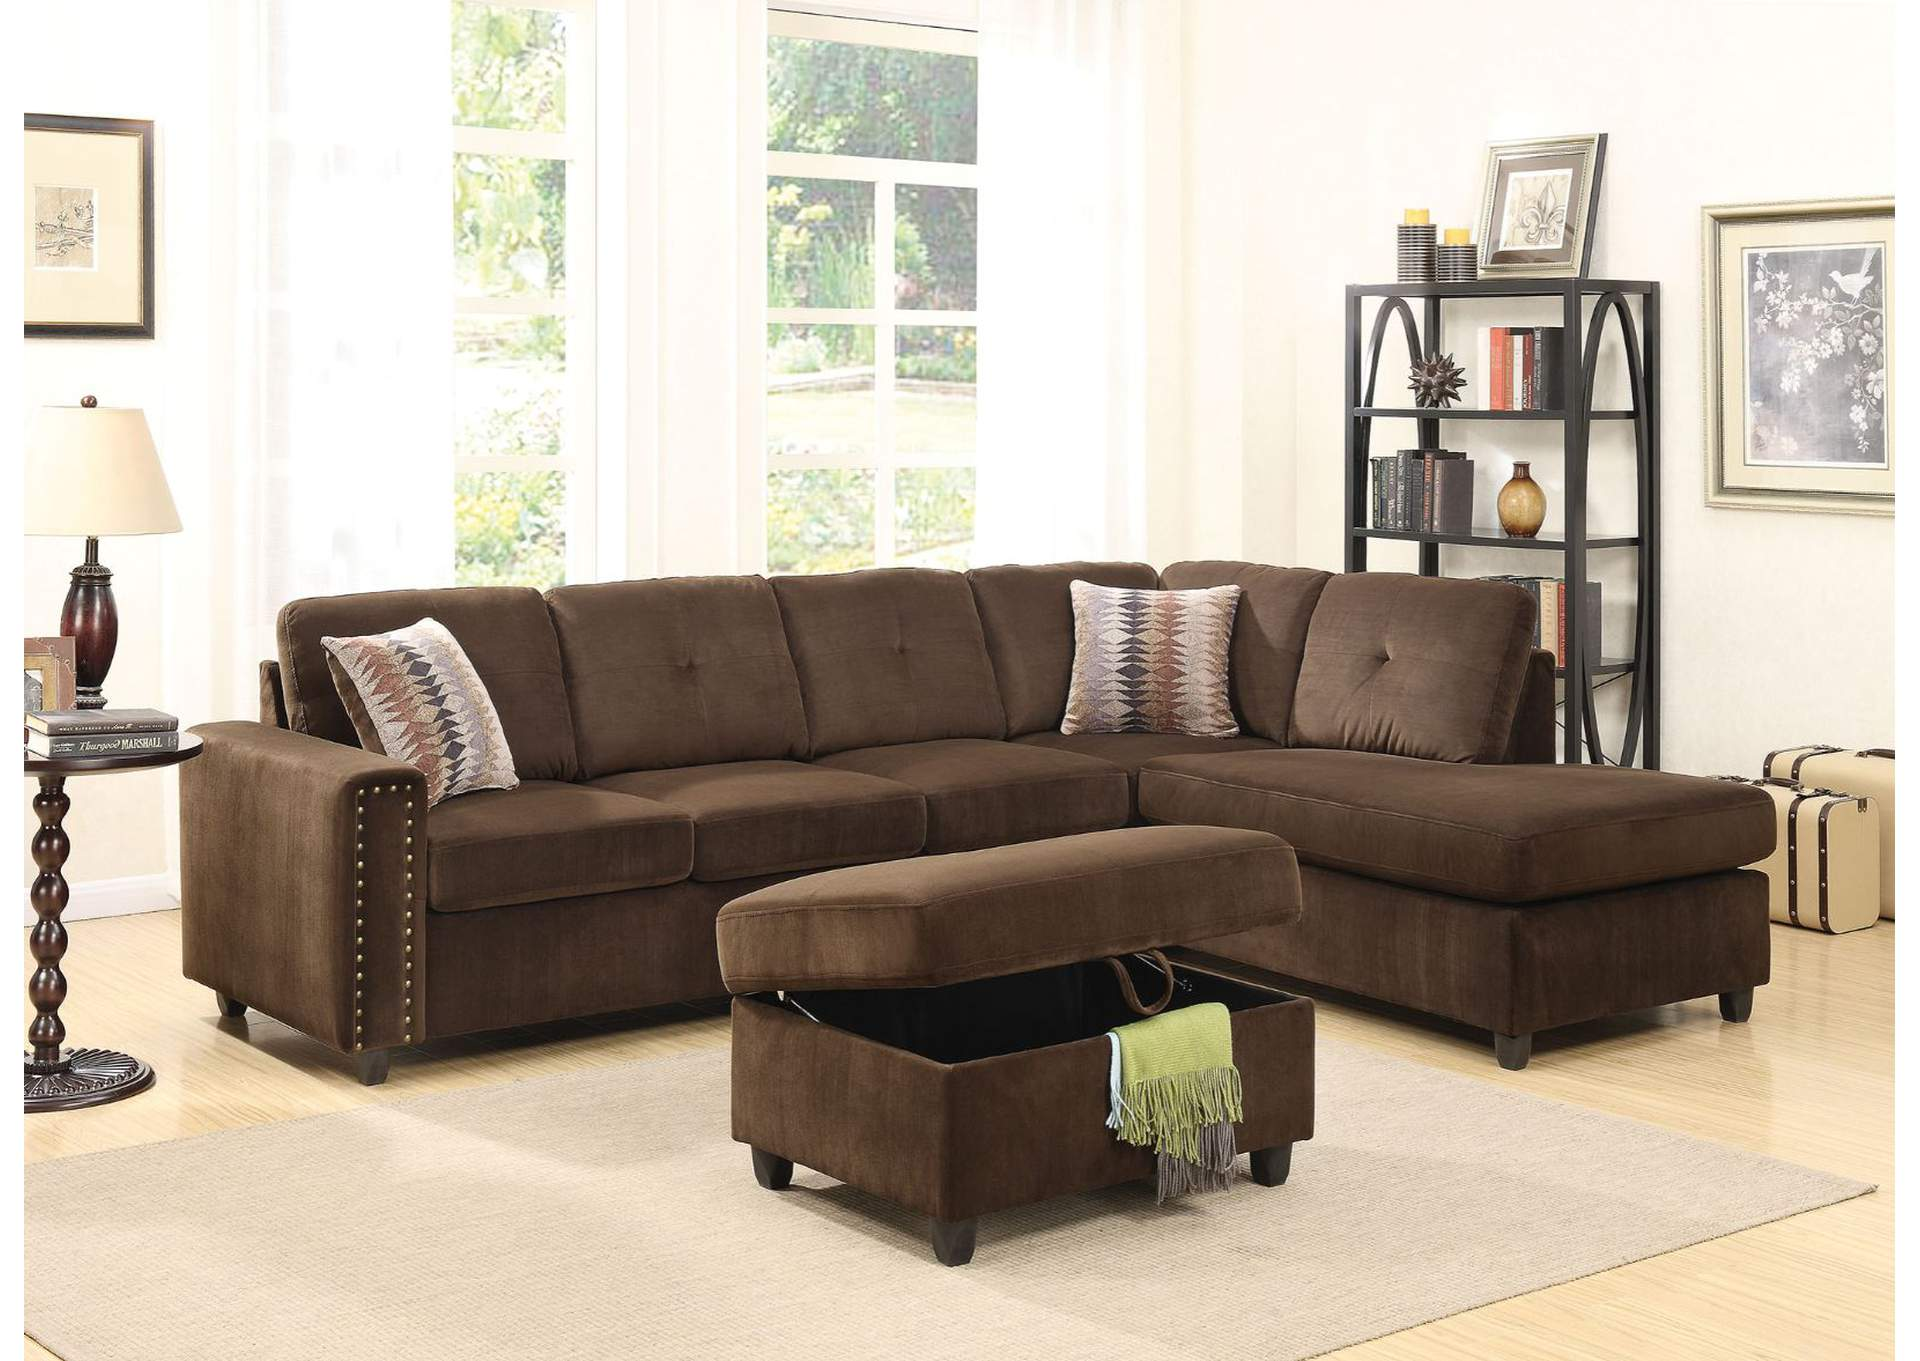 Belville Chocolate Velvet Sectional Sofa,Acme